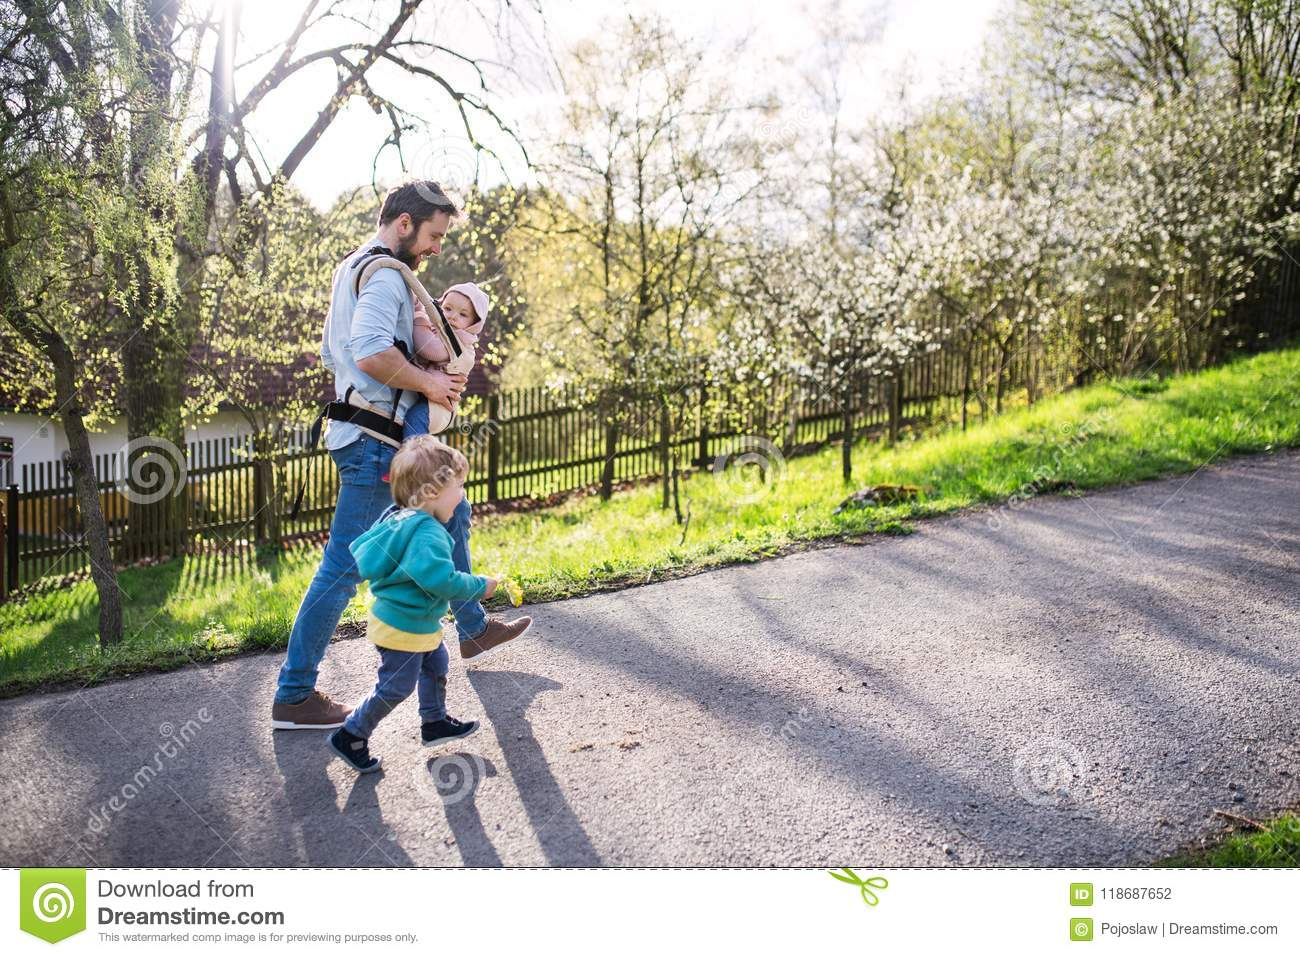 A father with his toddler children outside on a spring walk.